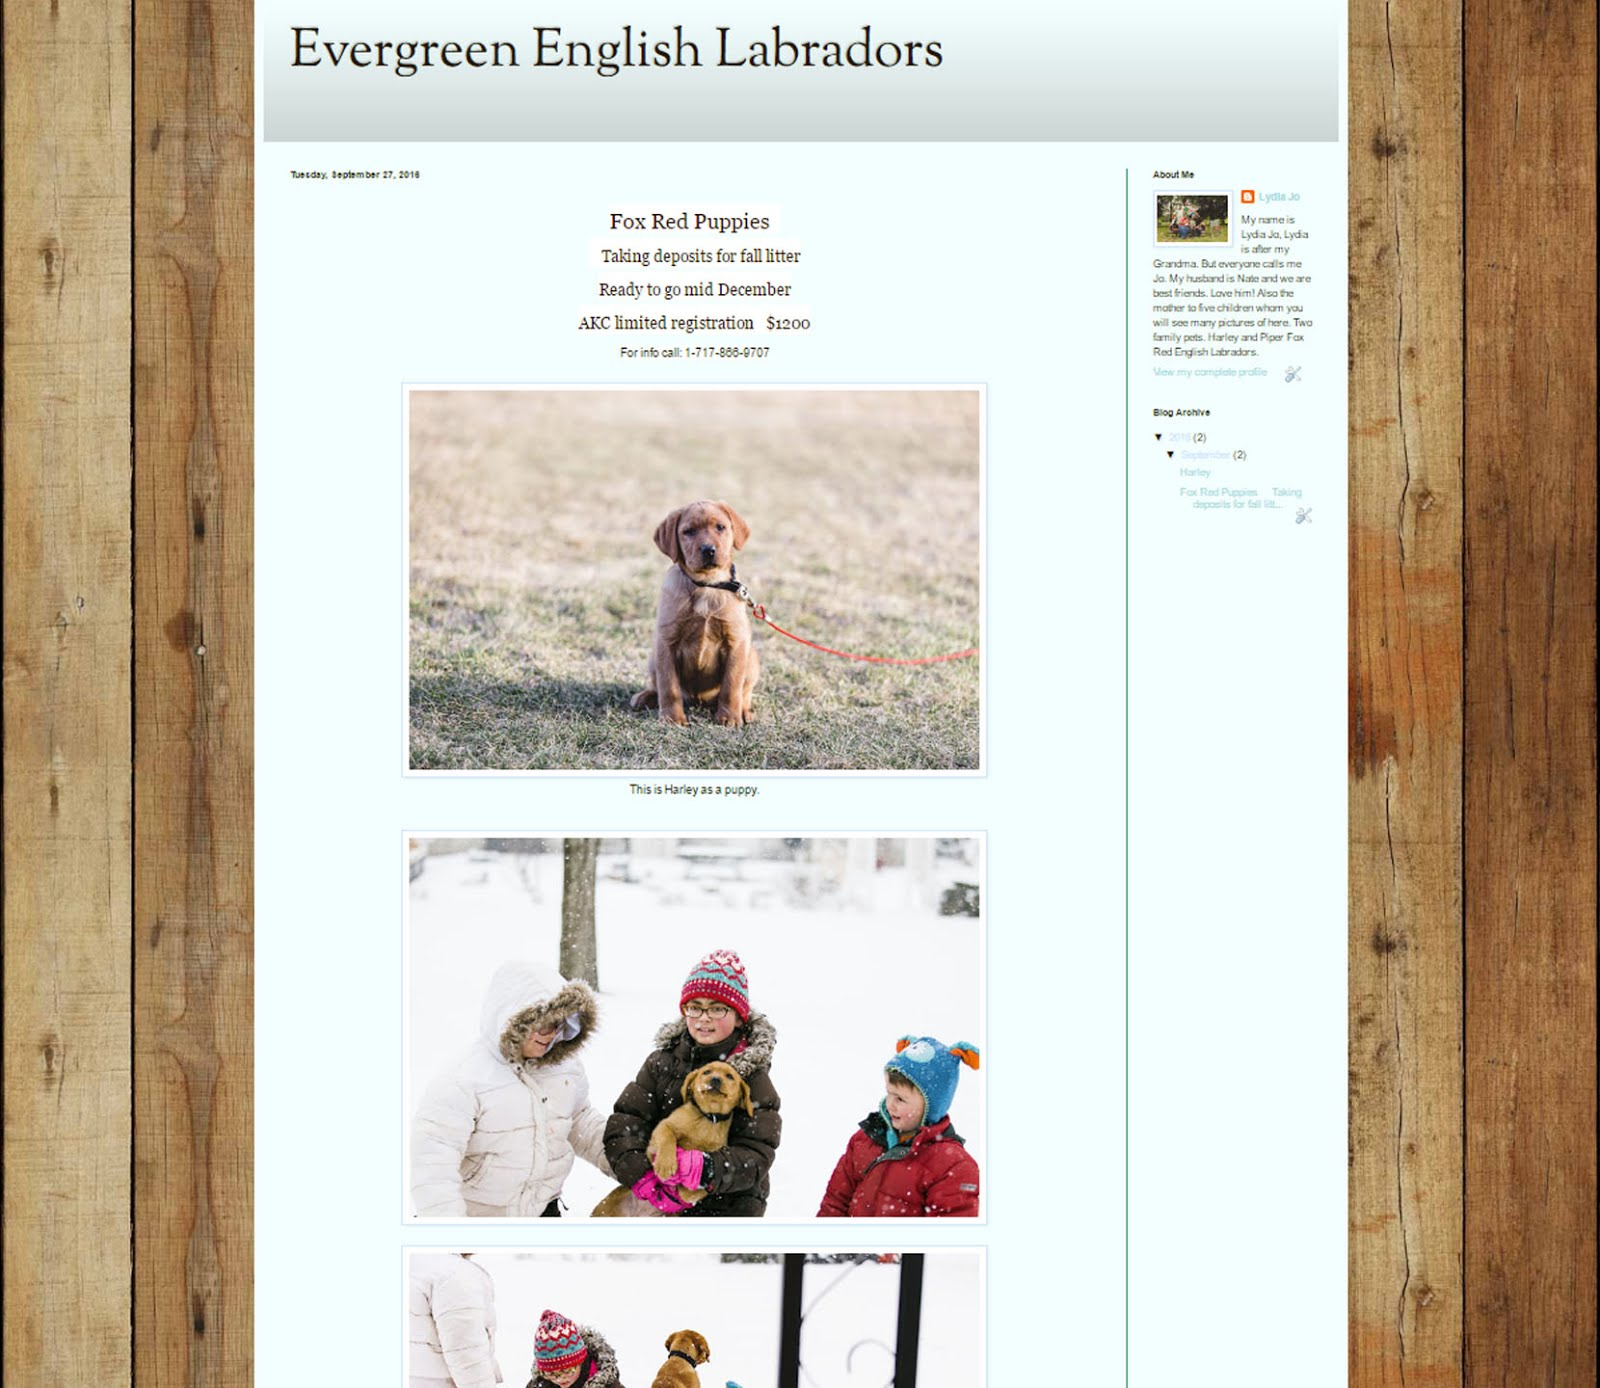 Evergreen English Labradors